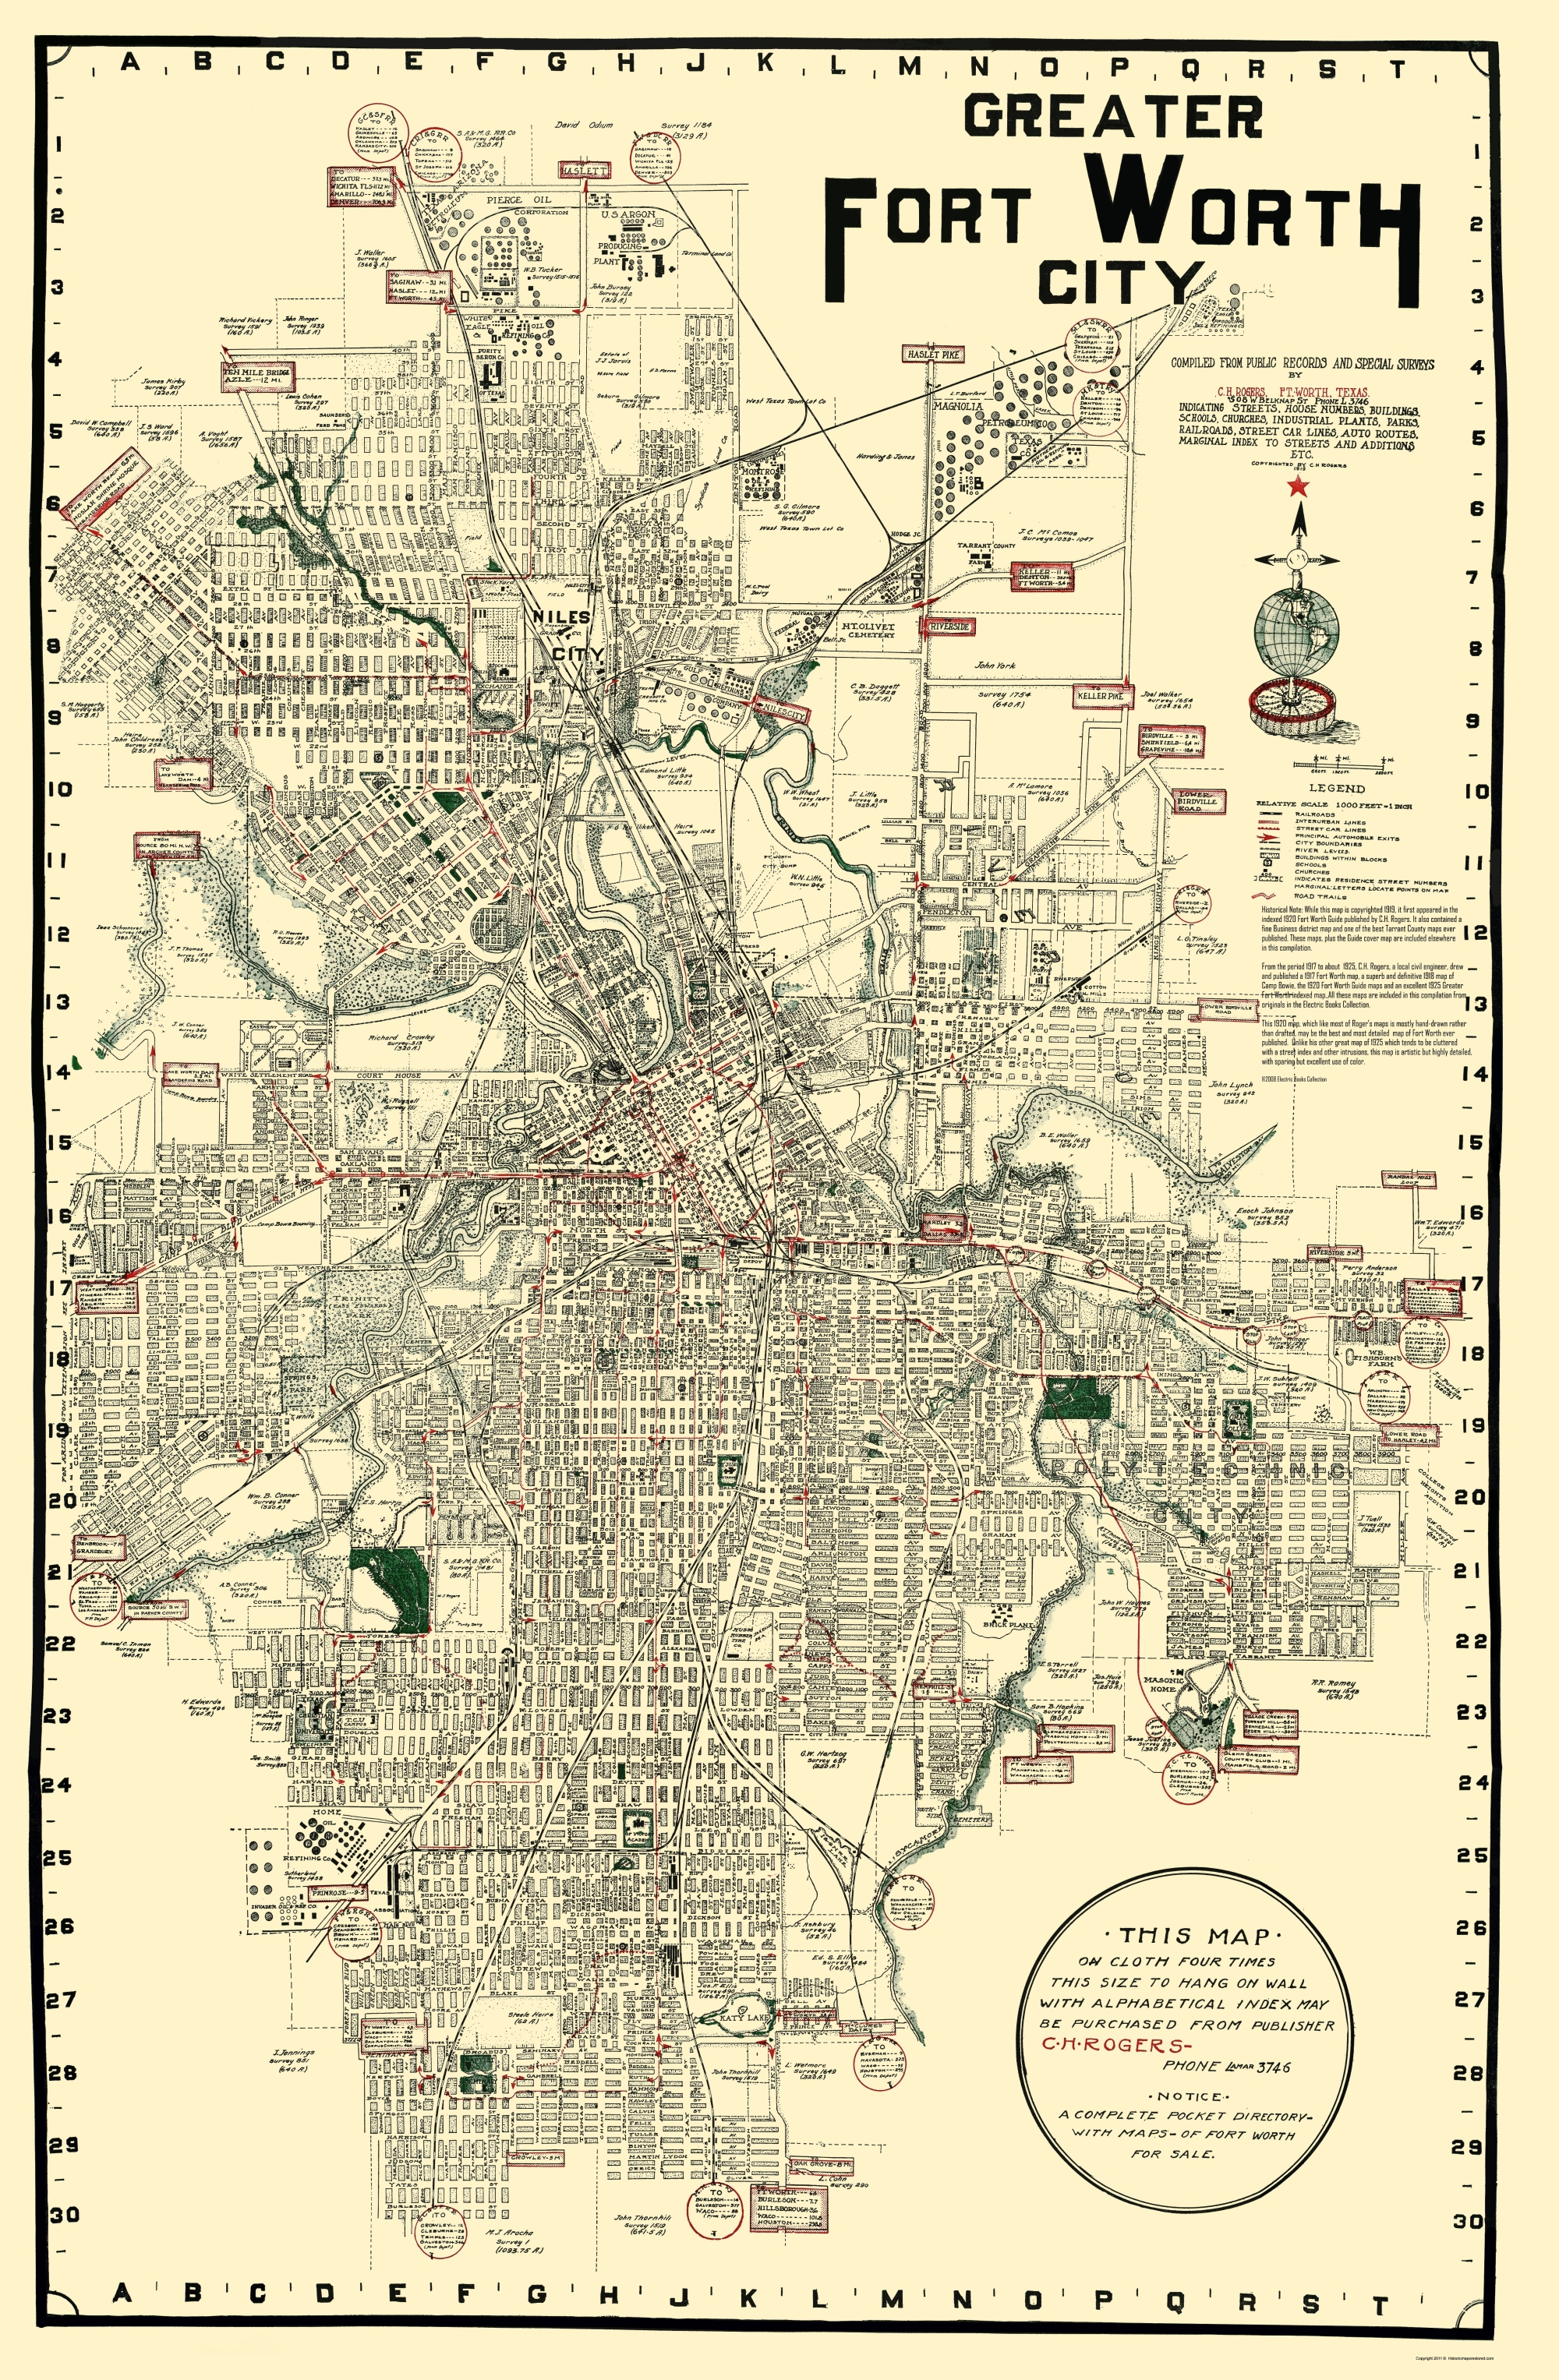 Old City Map - Fort Worth Texas - Rogers 1920